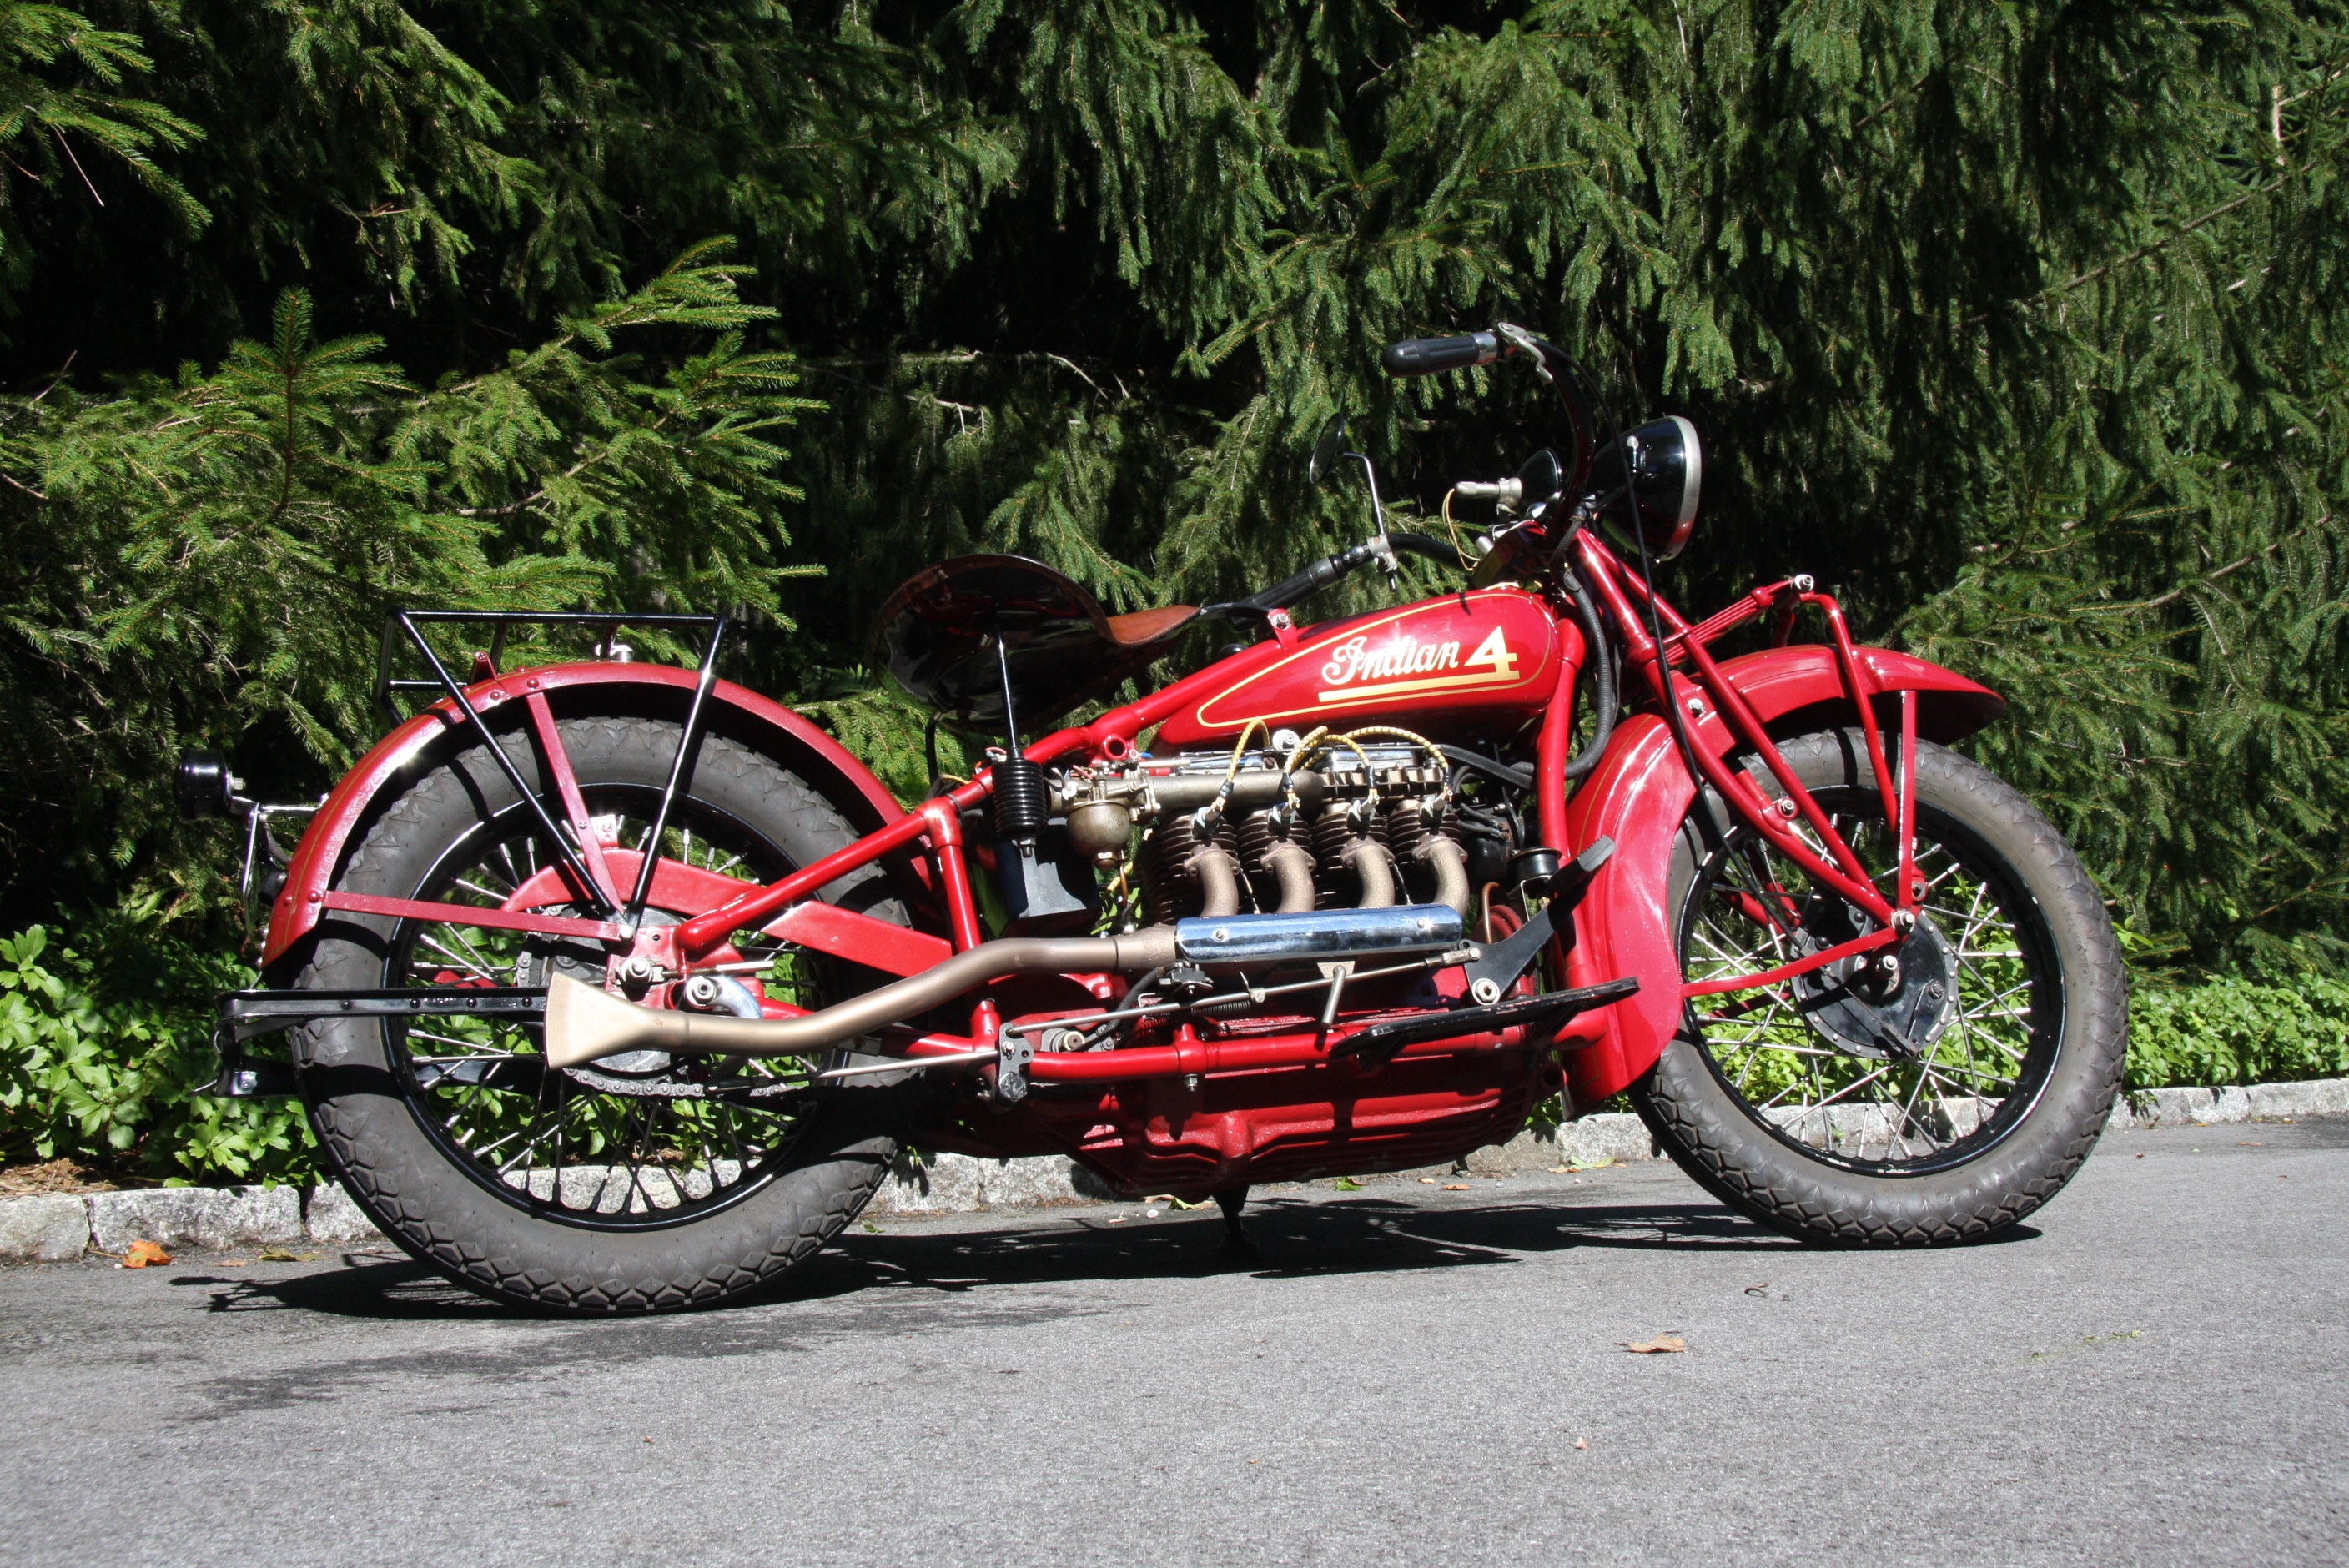 t3UJozq Fr5lKd 1930-indian-motorcycle